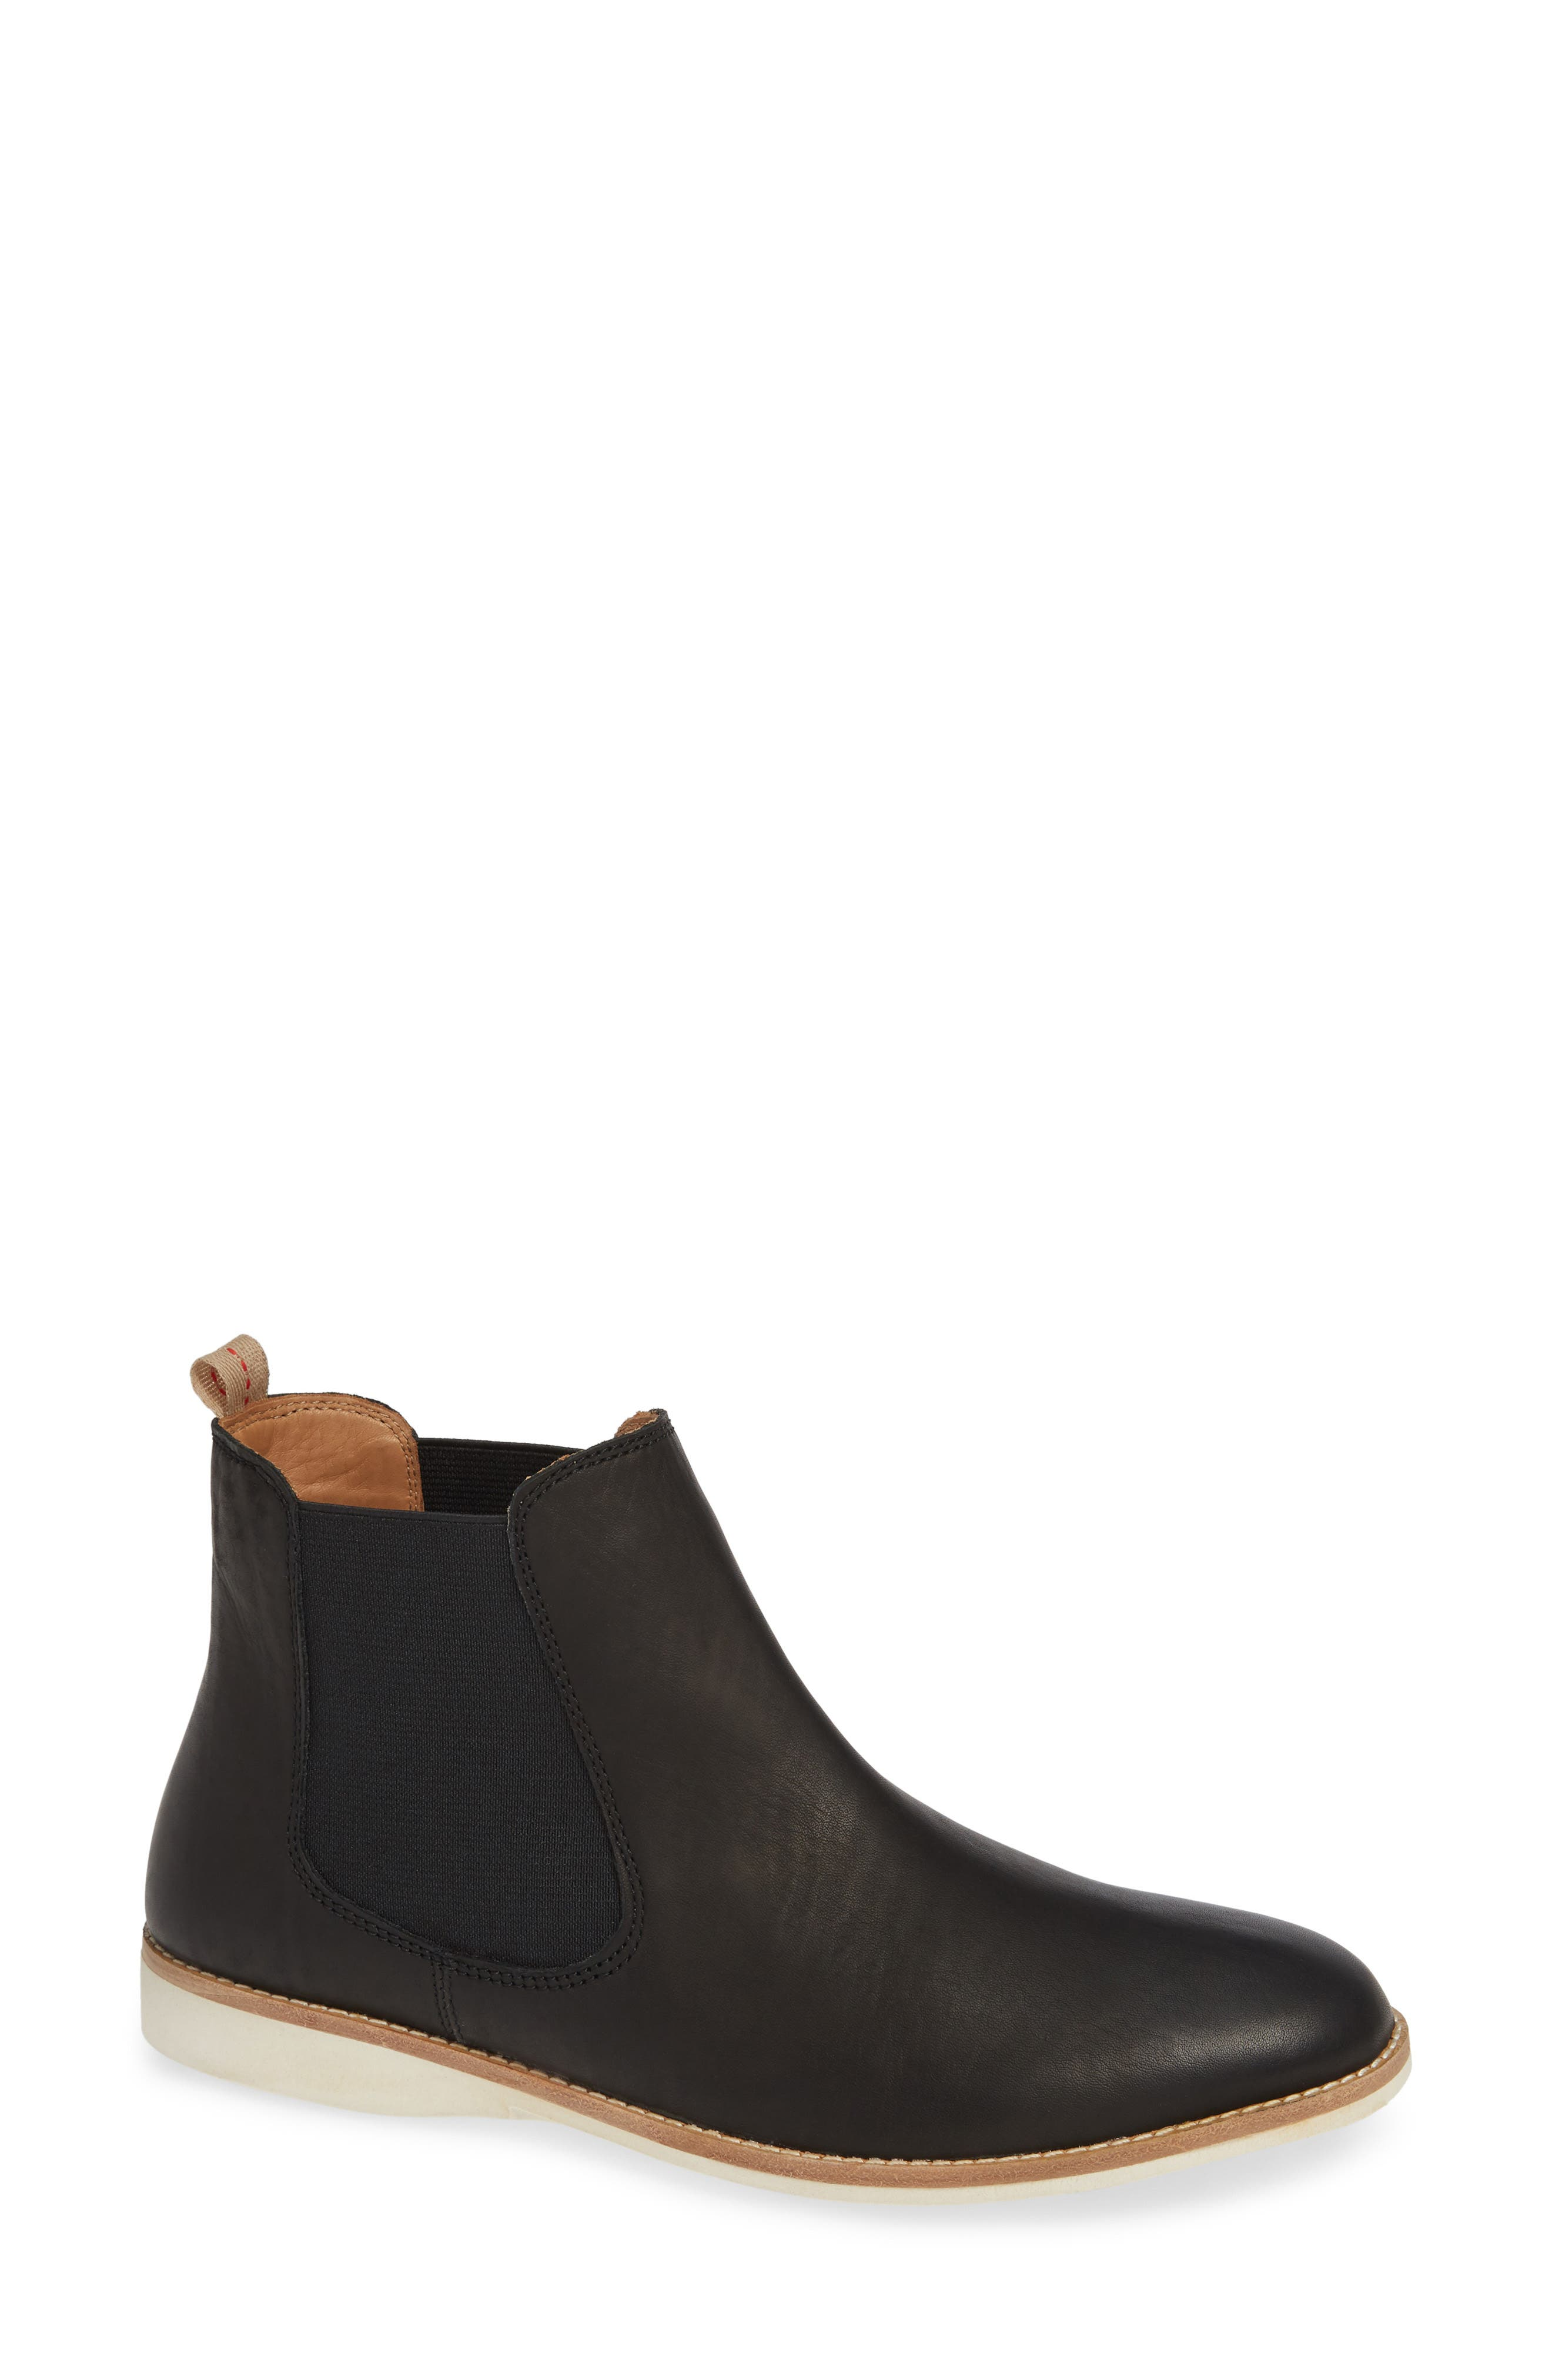 ROLLIE Leather Chelsea Bootie in Black